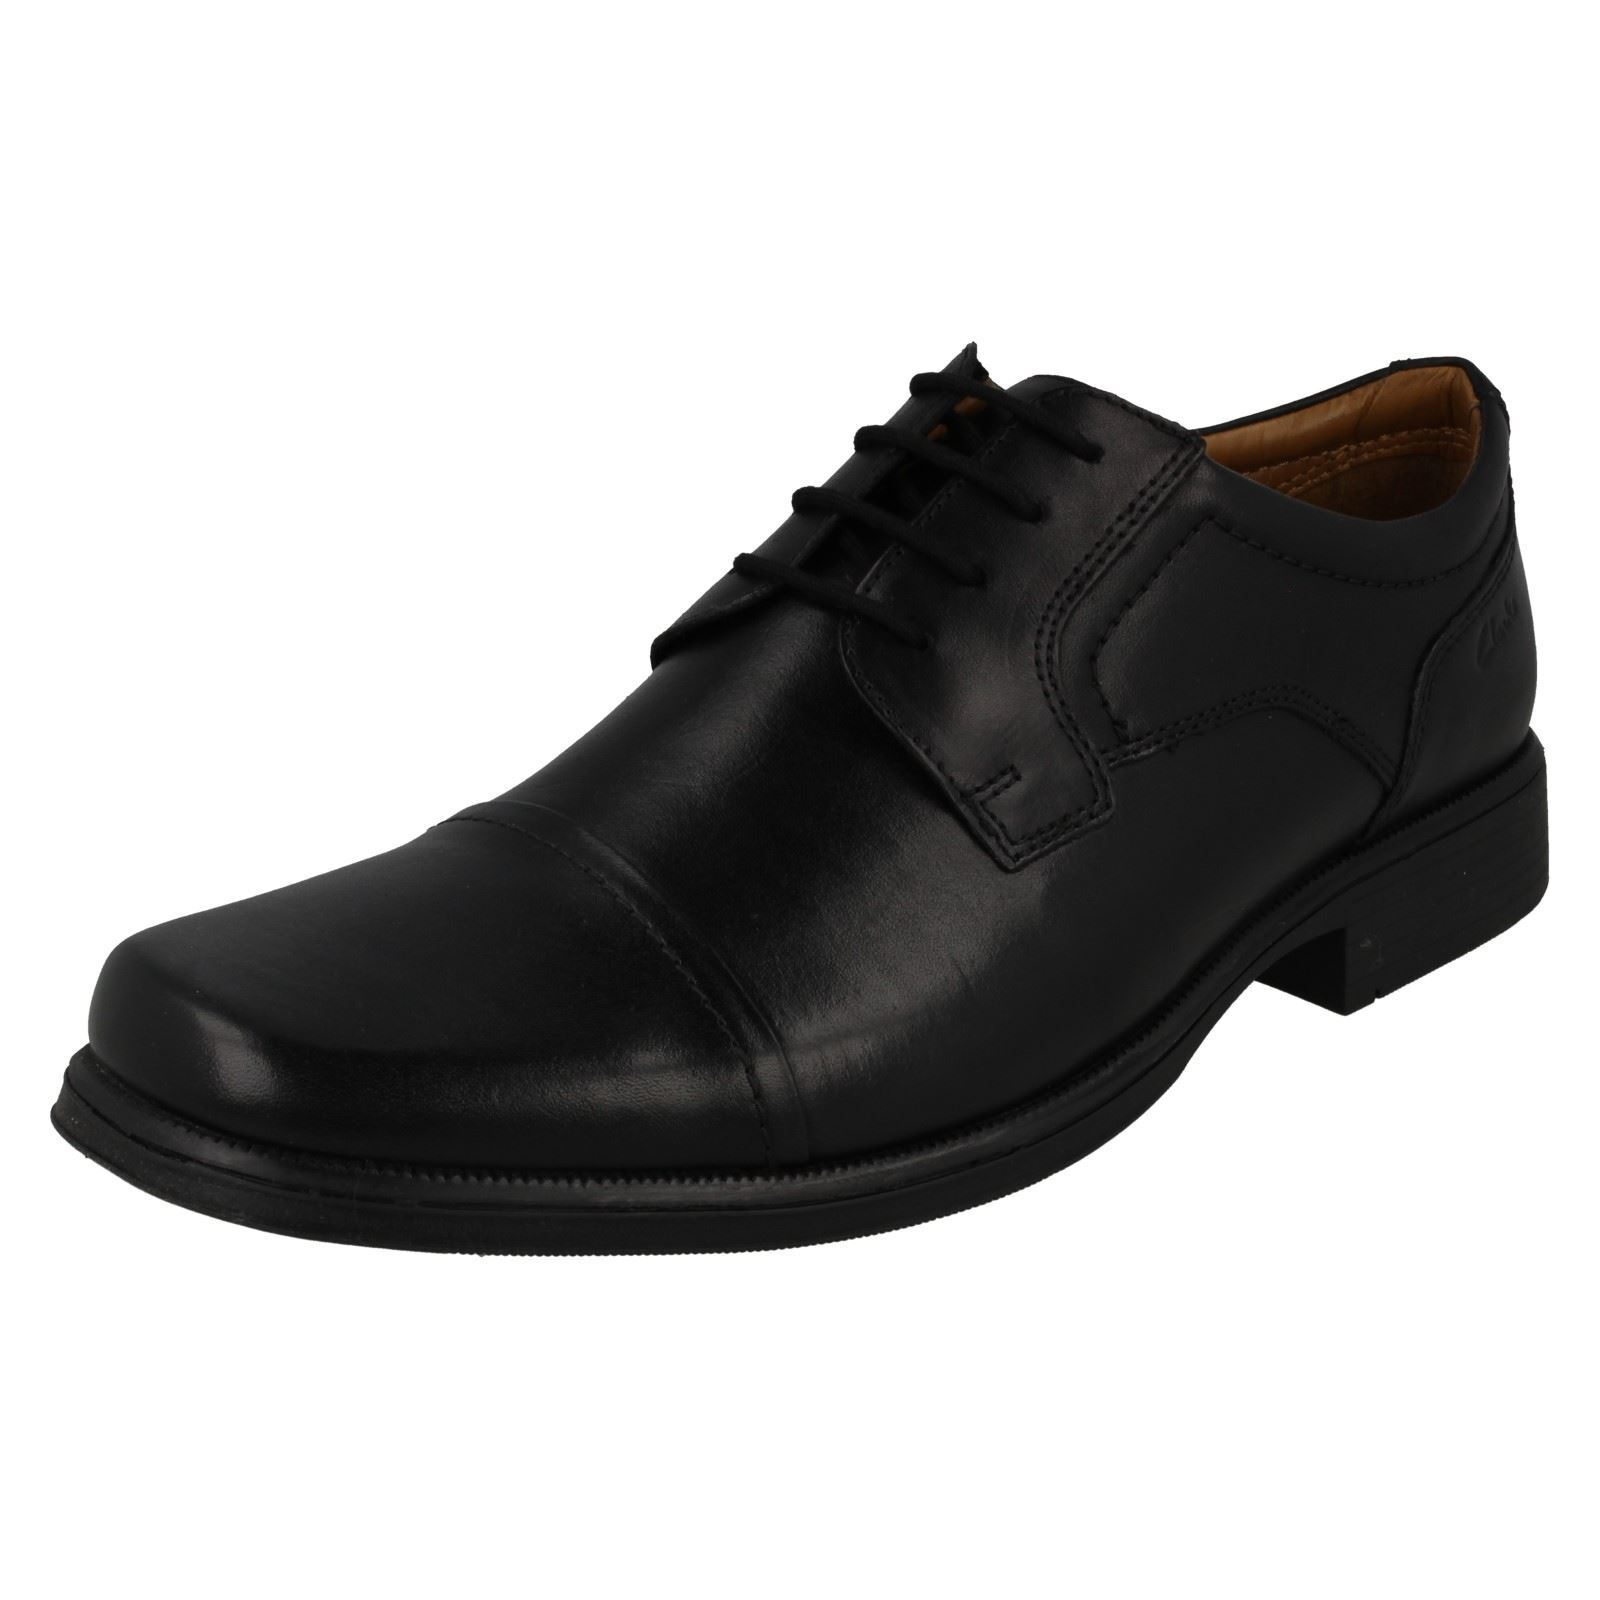 Clarks Mens Formal Lace Up shoes Huckley Cap